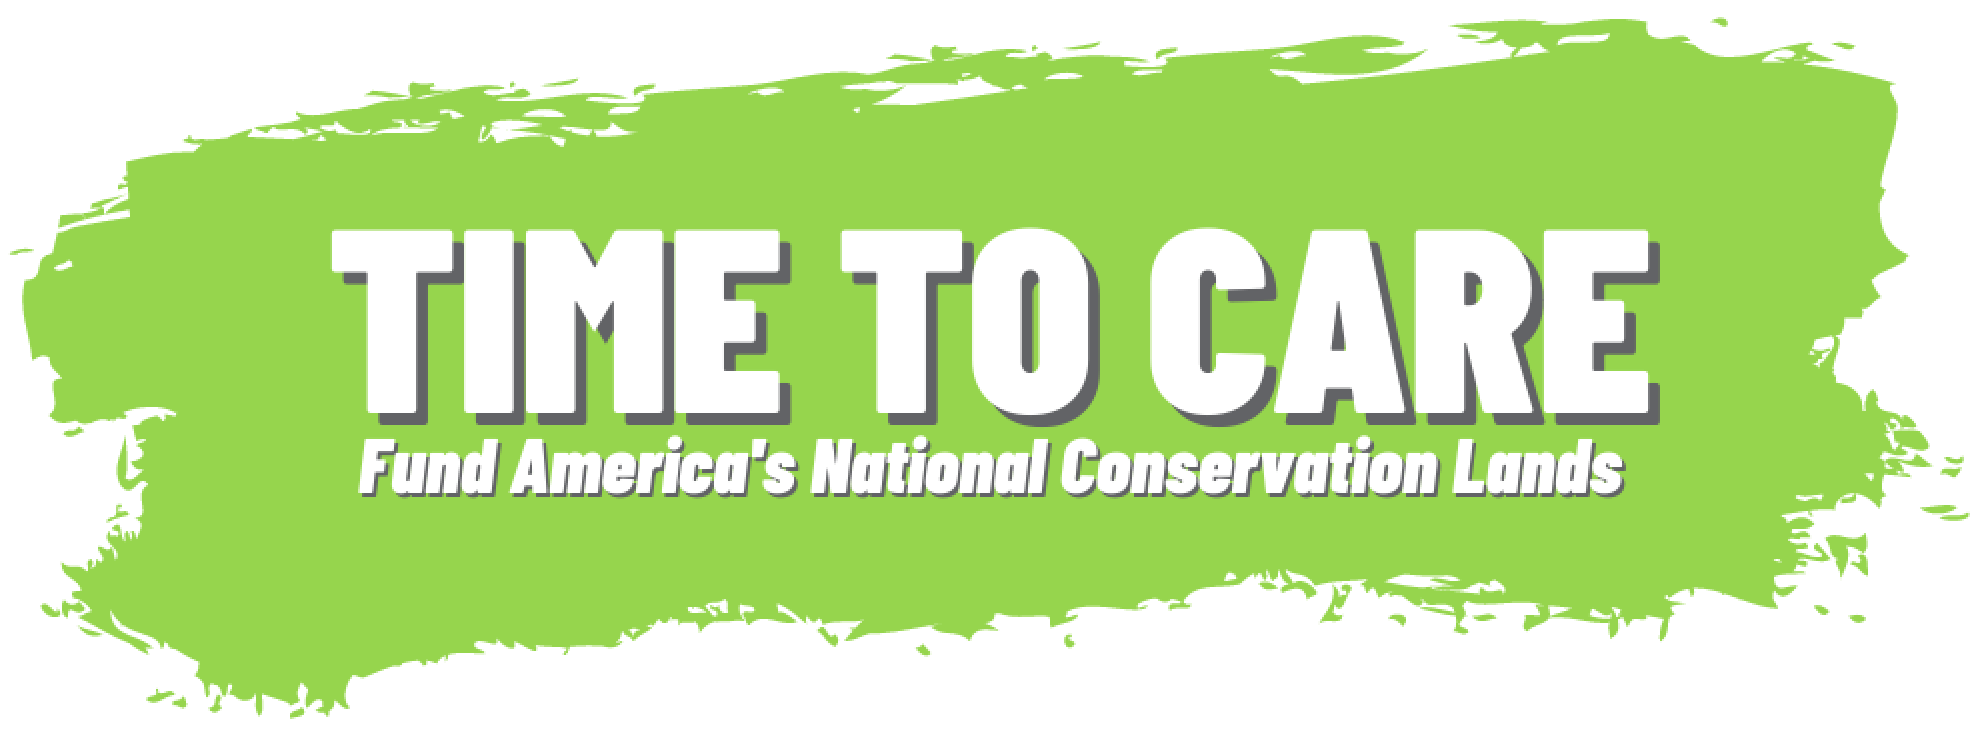 It's Time To Care: Tell Your Senators To Increase Funding For Cultural Resources and National Conservation Lands